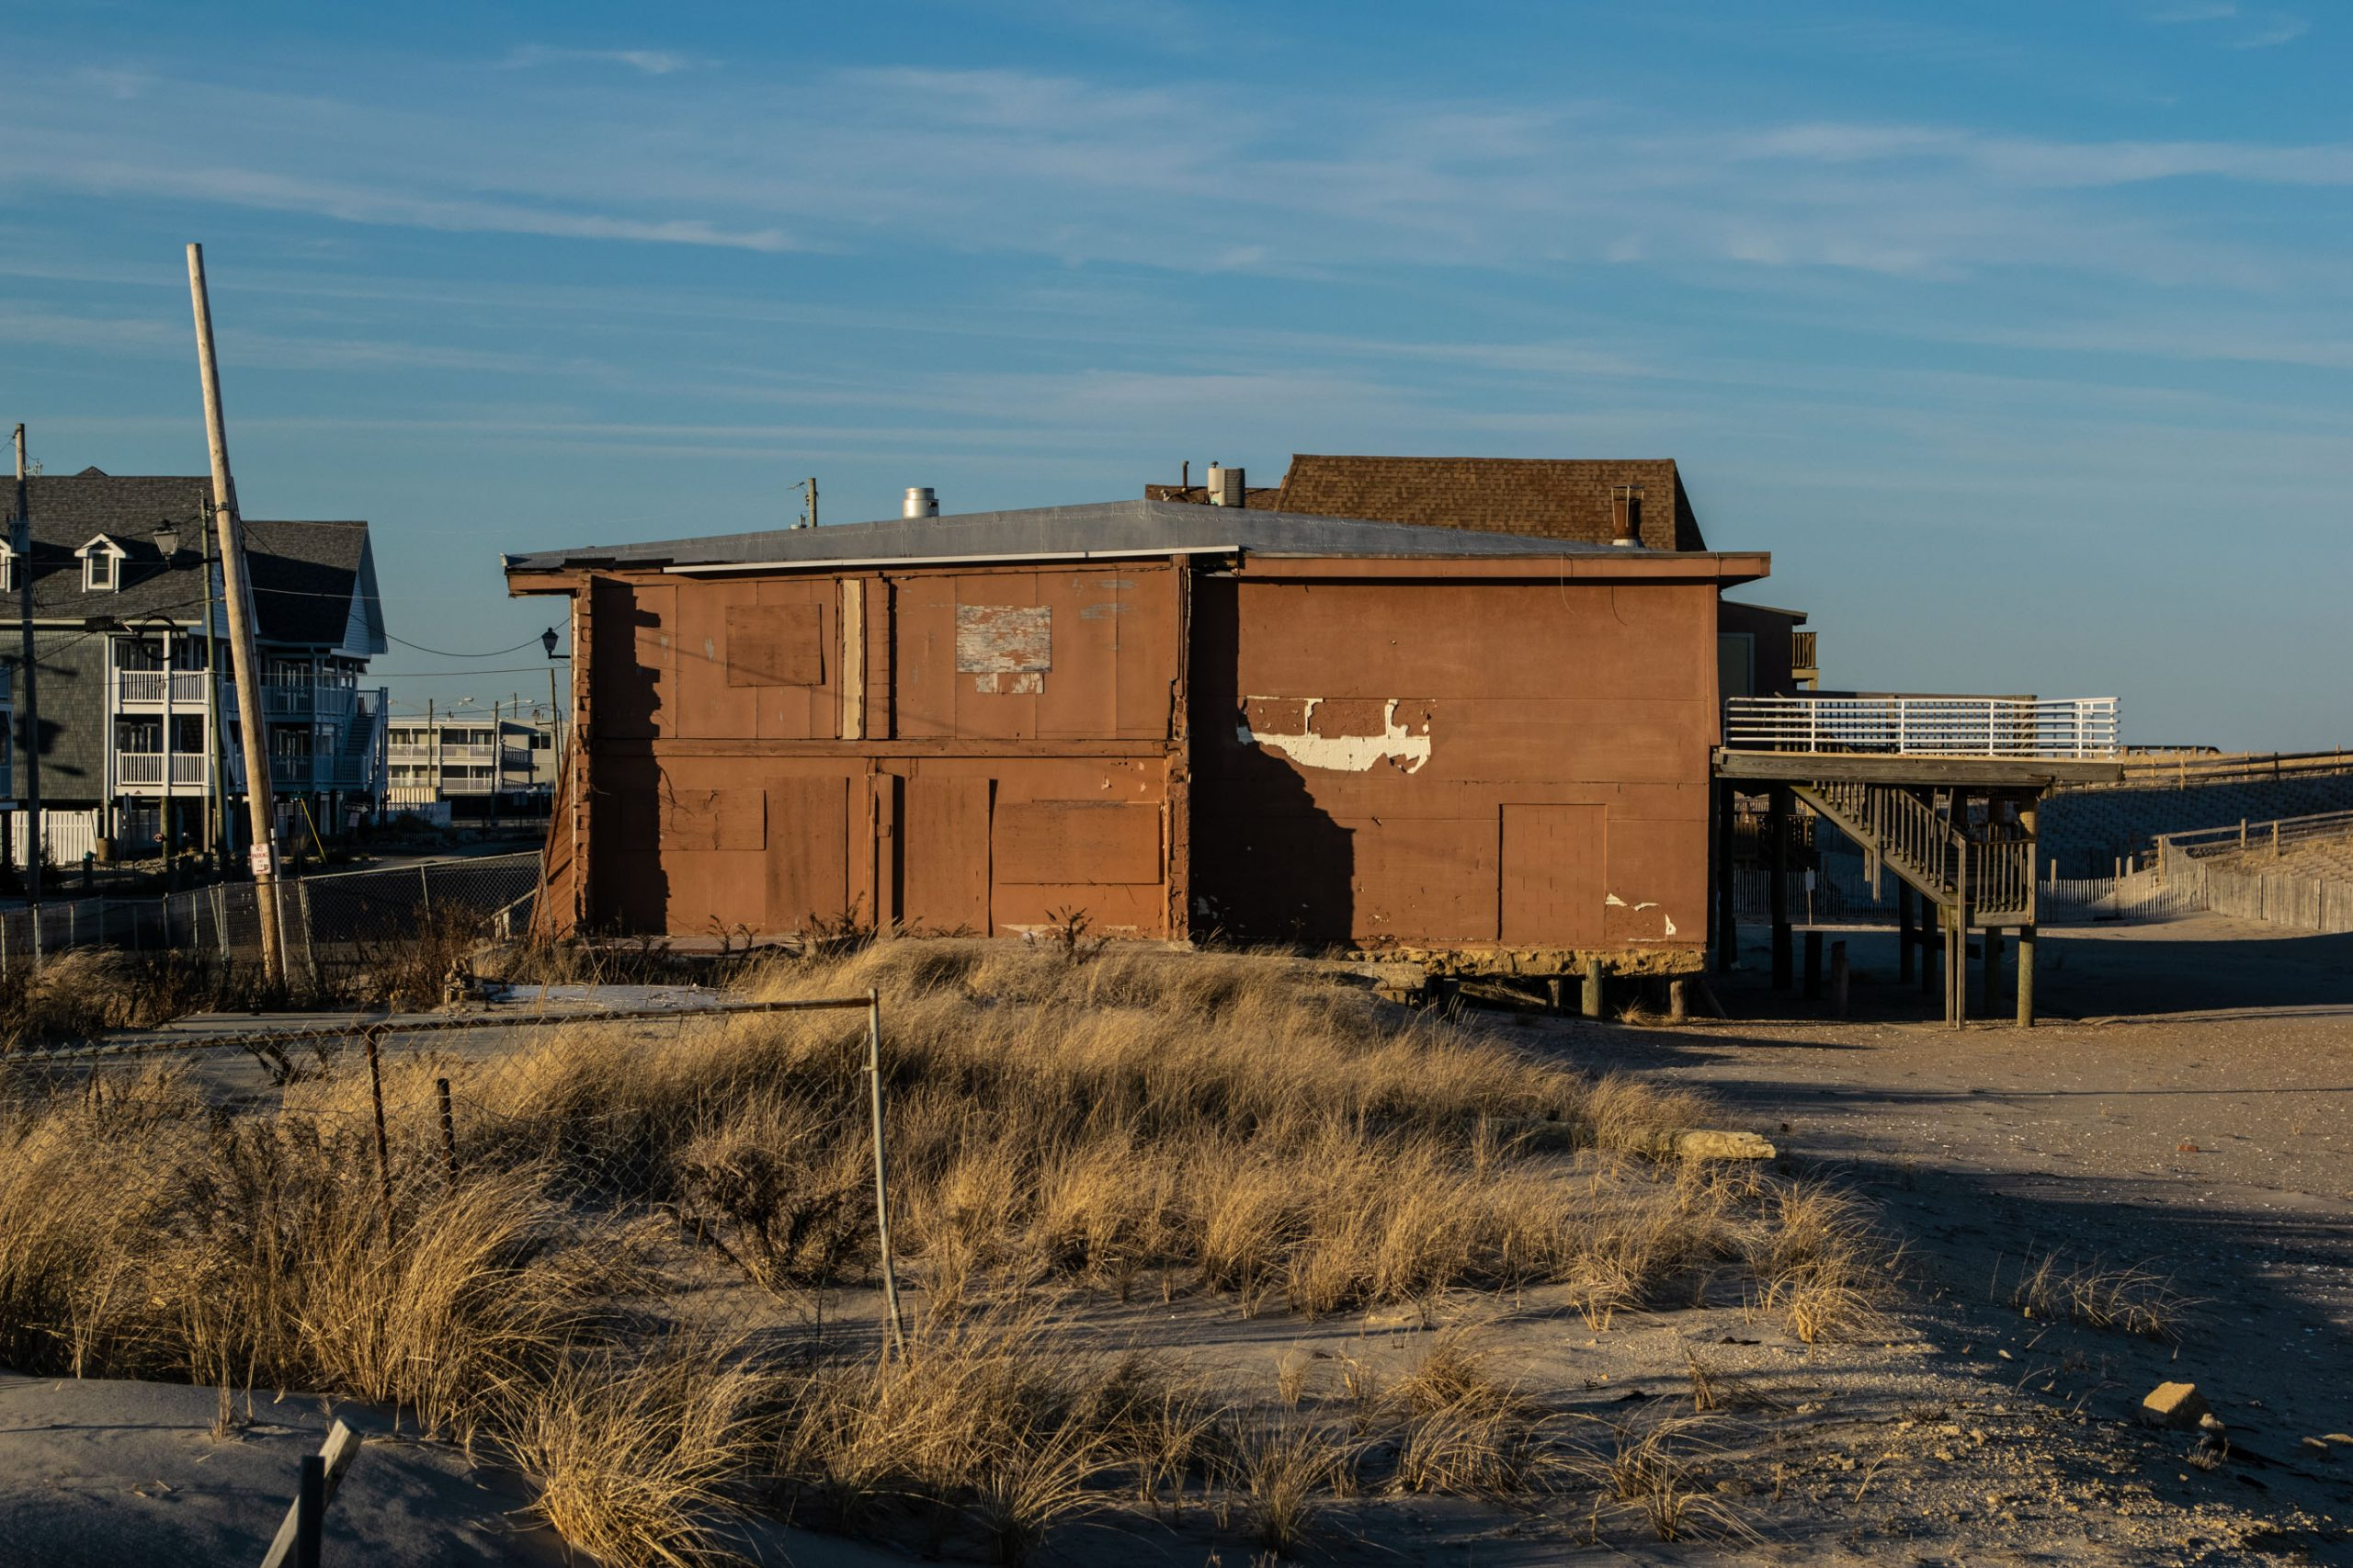 The former Joey Harrison's Surf Club, Ortley Beach, Feb. 2020. (Photo: Daniel Nee)